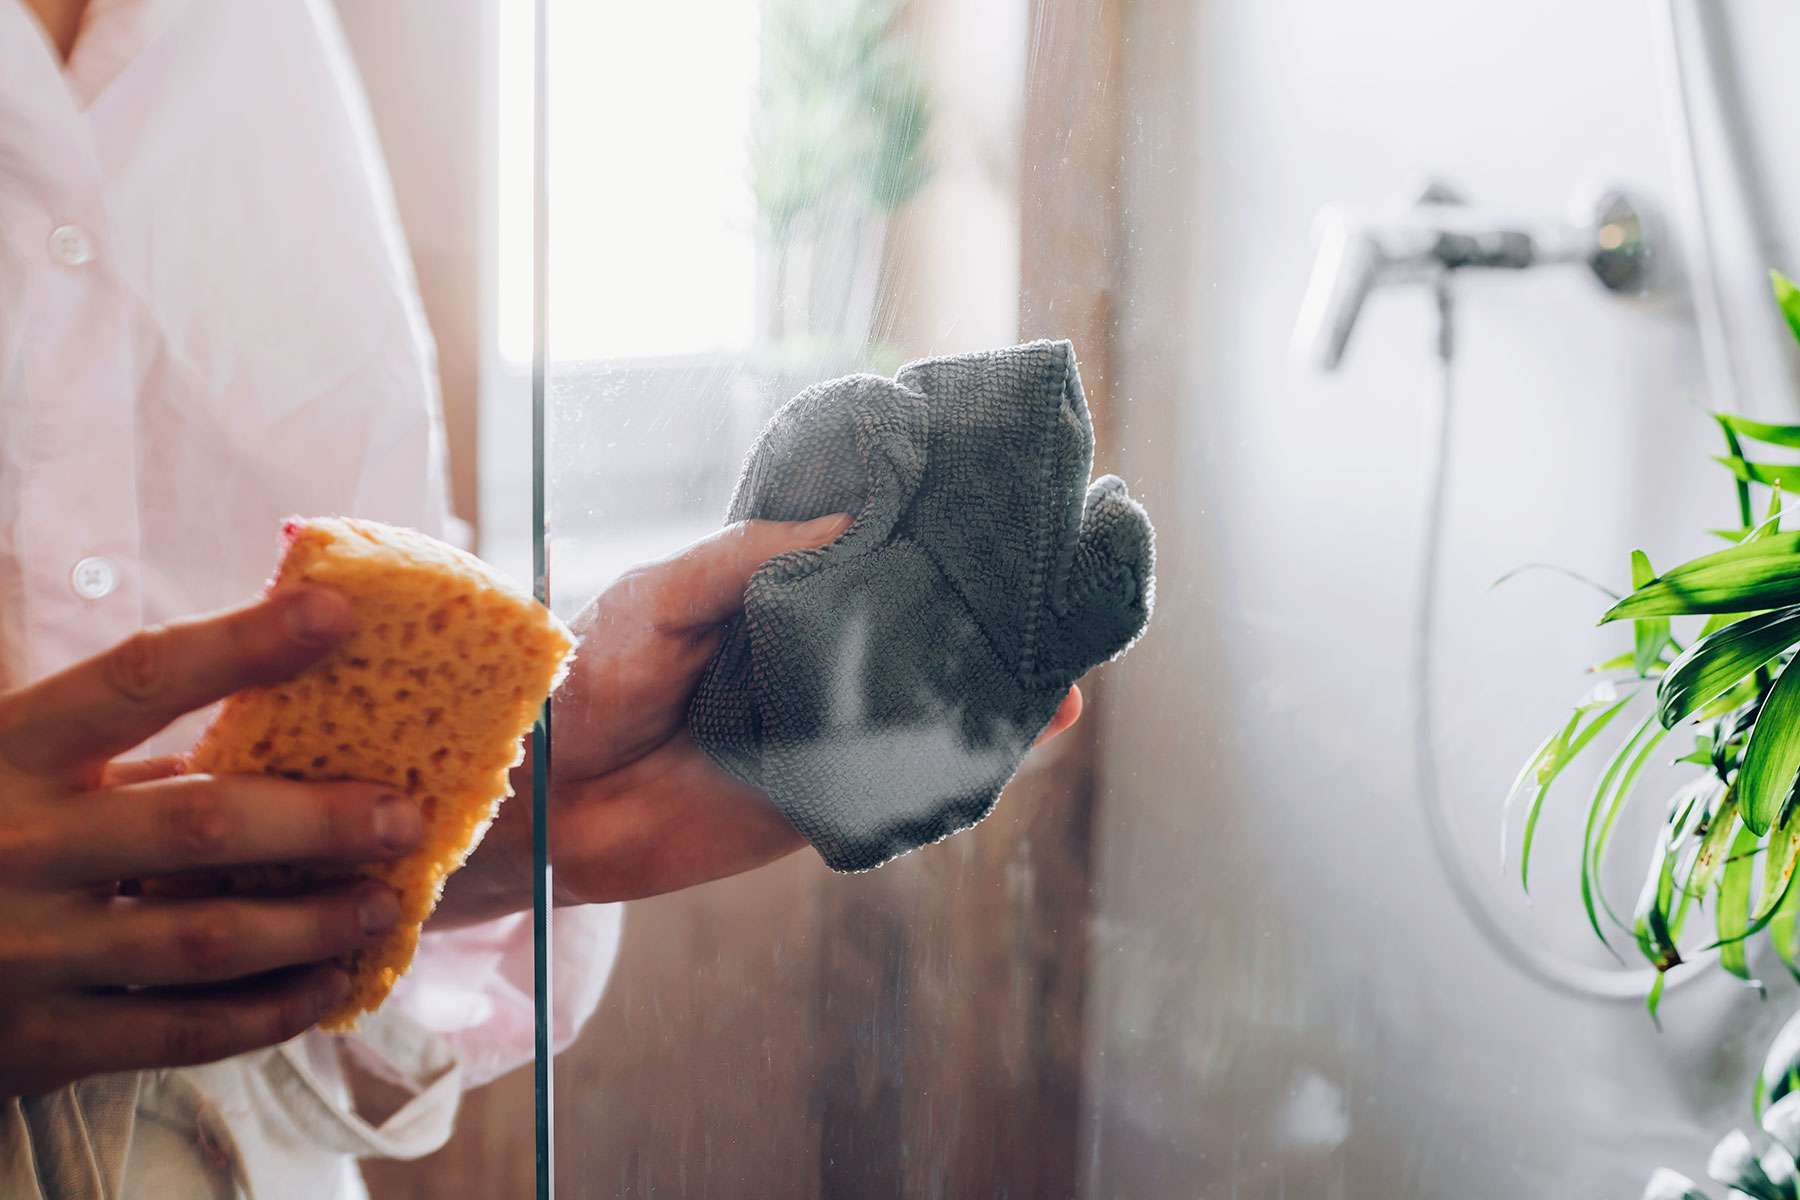 Gray microfiber cloth drying glass shower door after spraying Ammonia and water solution